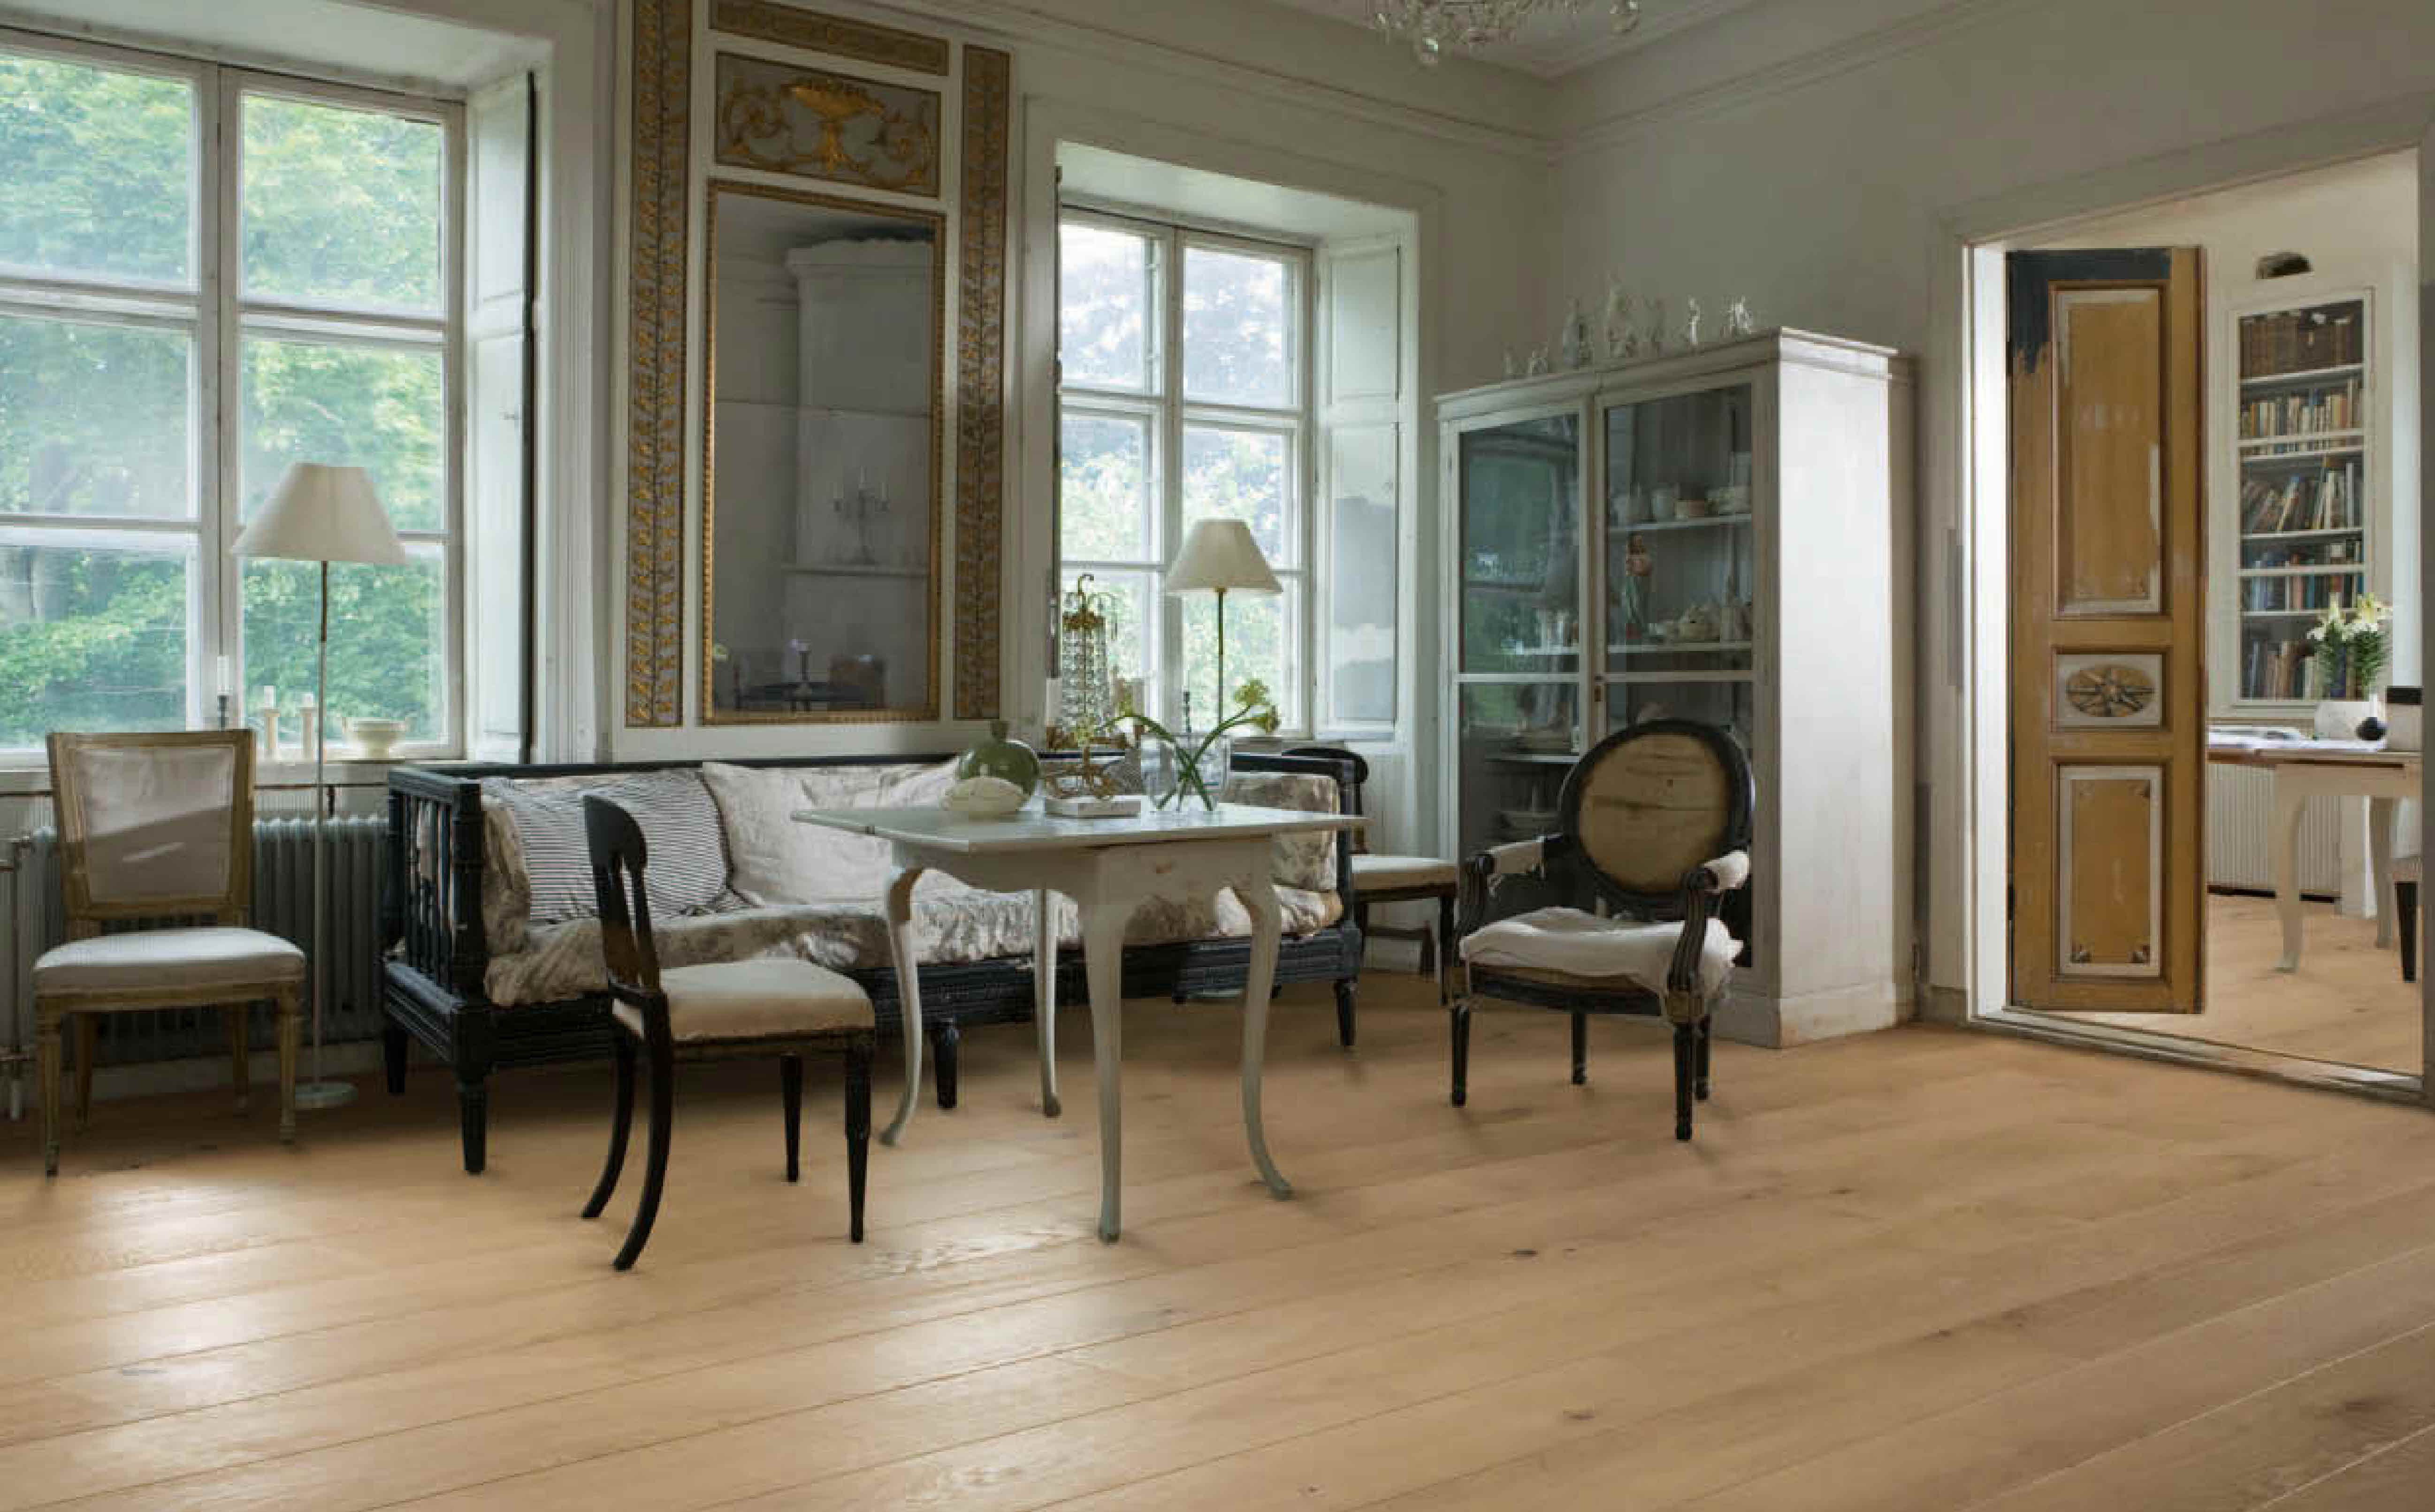 Swedish Furniture gustavian style: warm or cool tones?